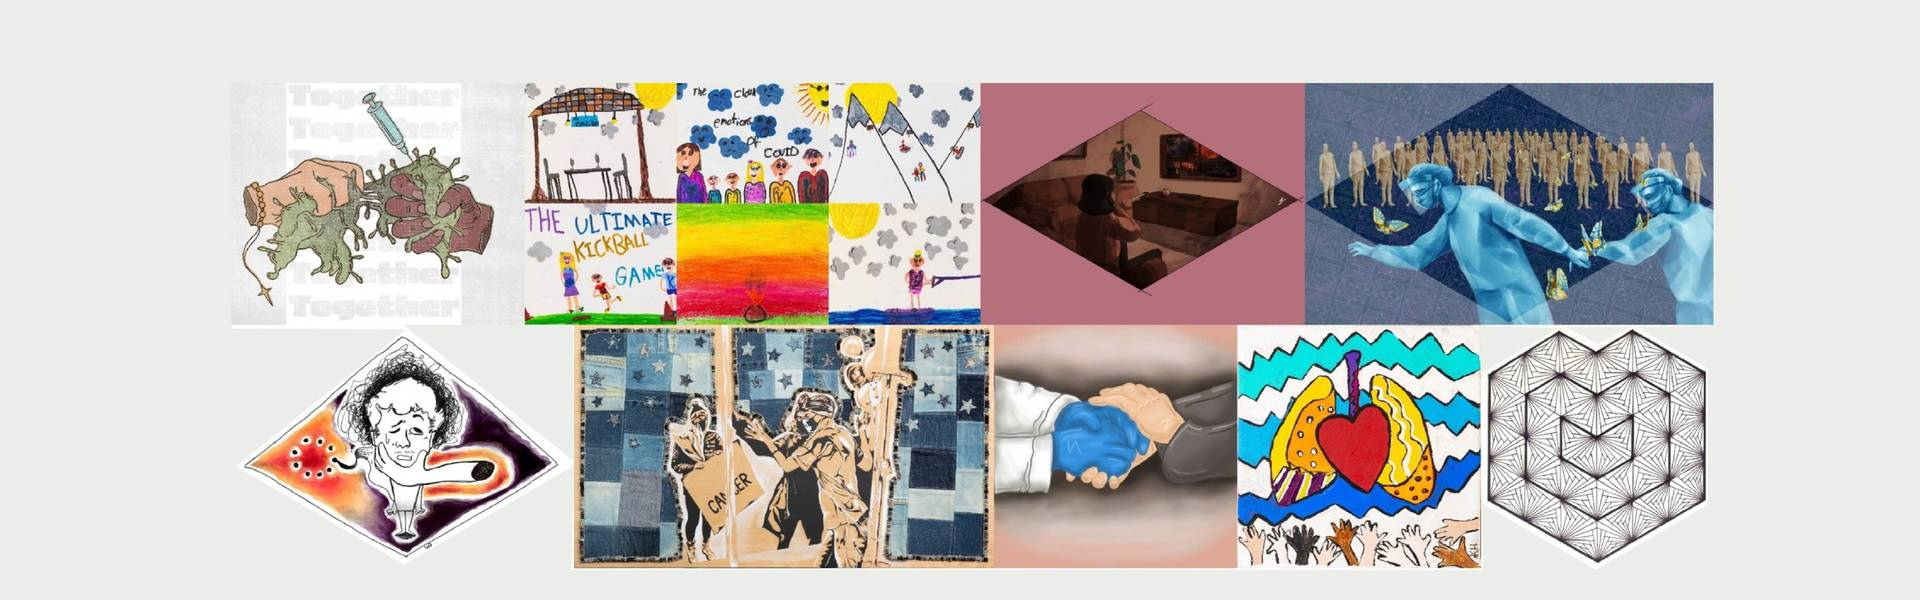 A collage of images that are a part of the following collection